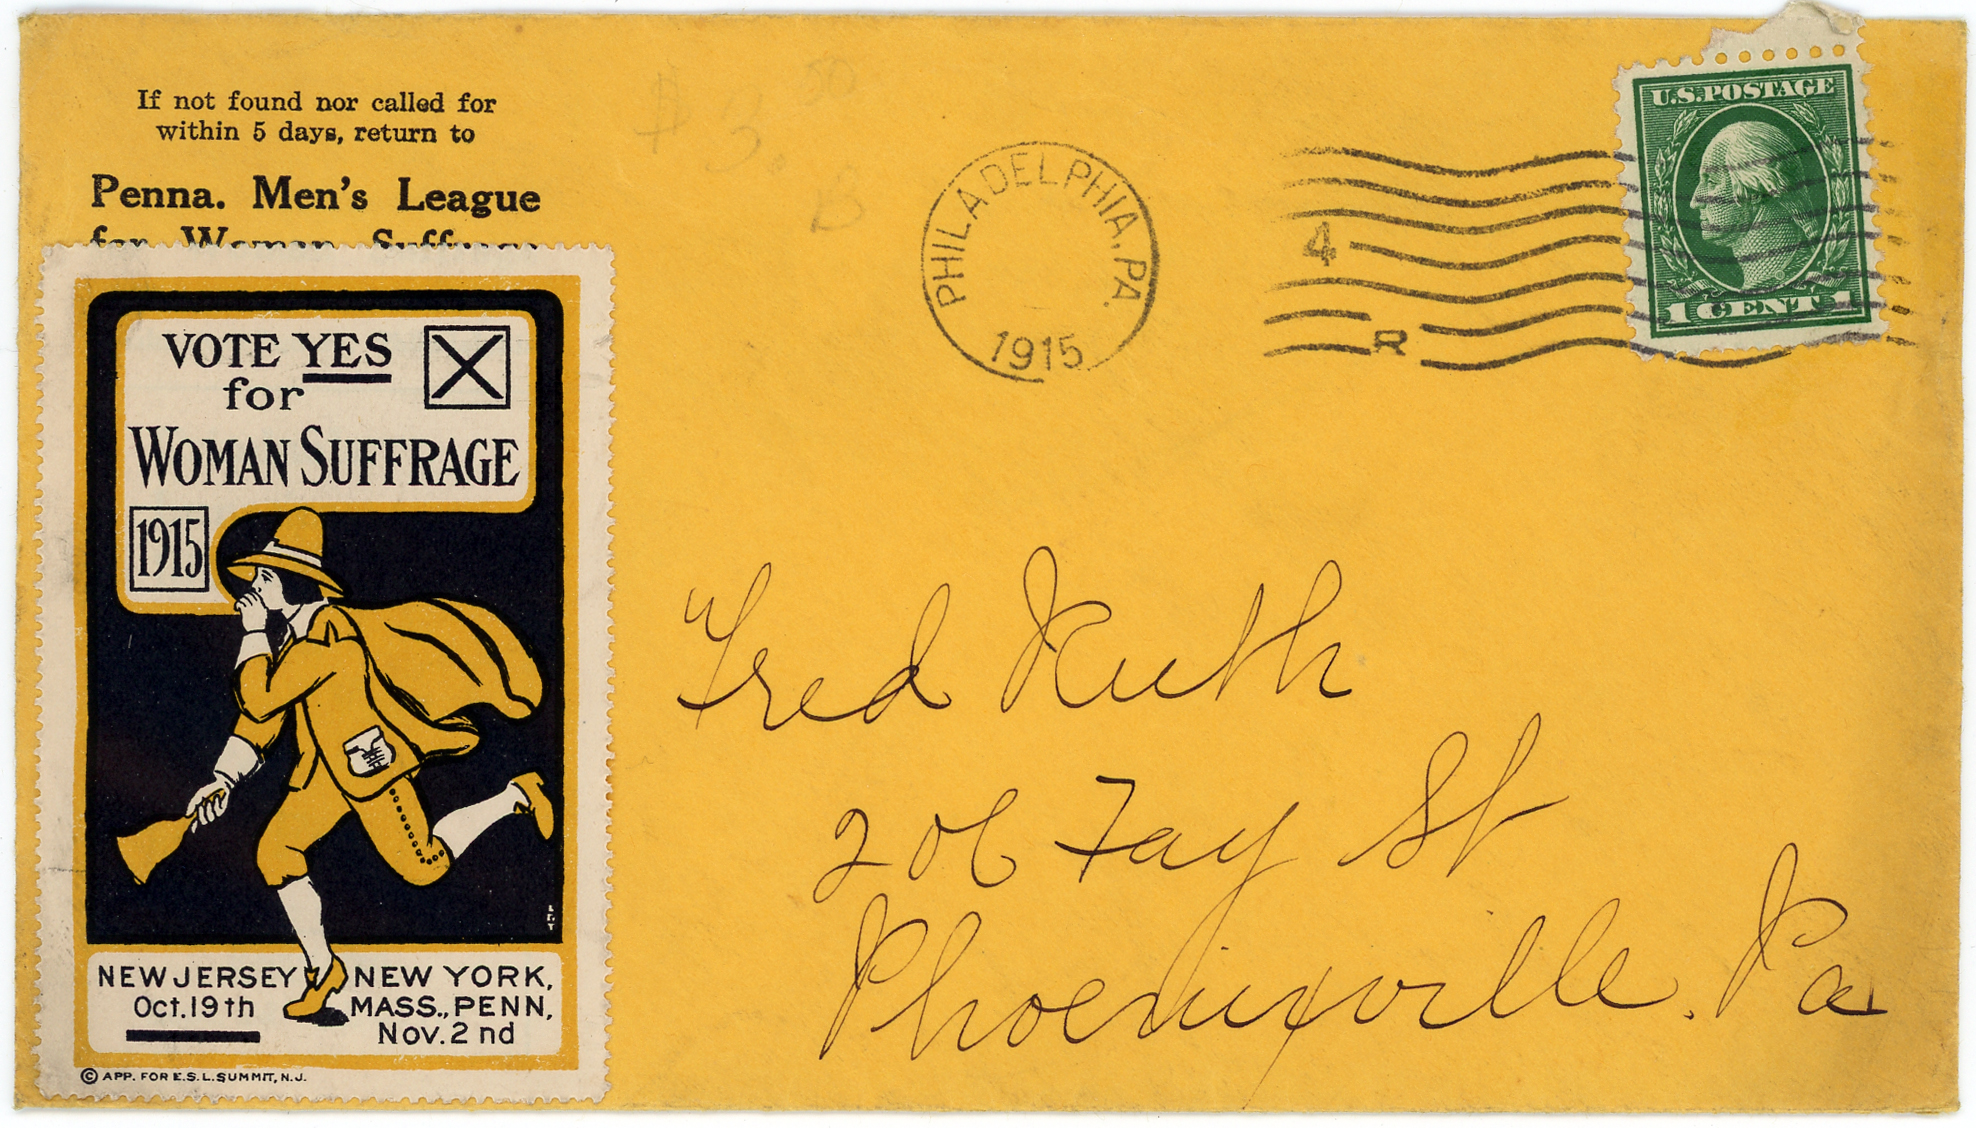 US_misc_historical_351 with envelope